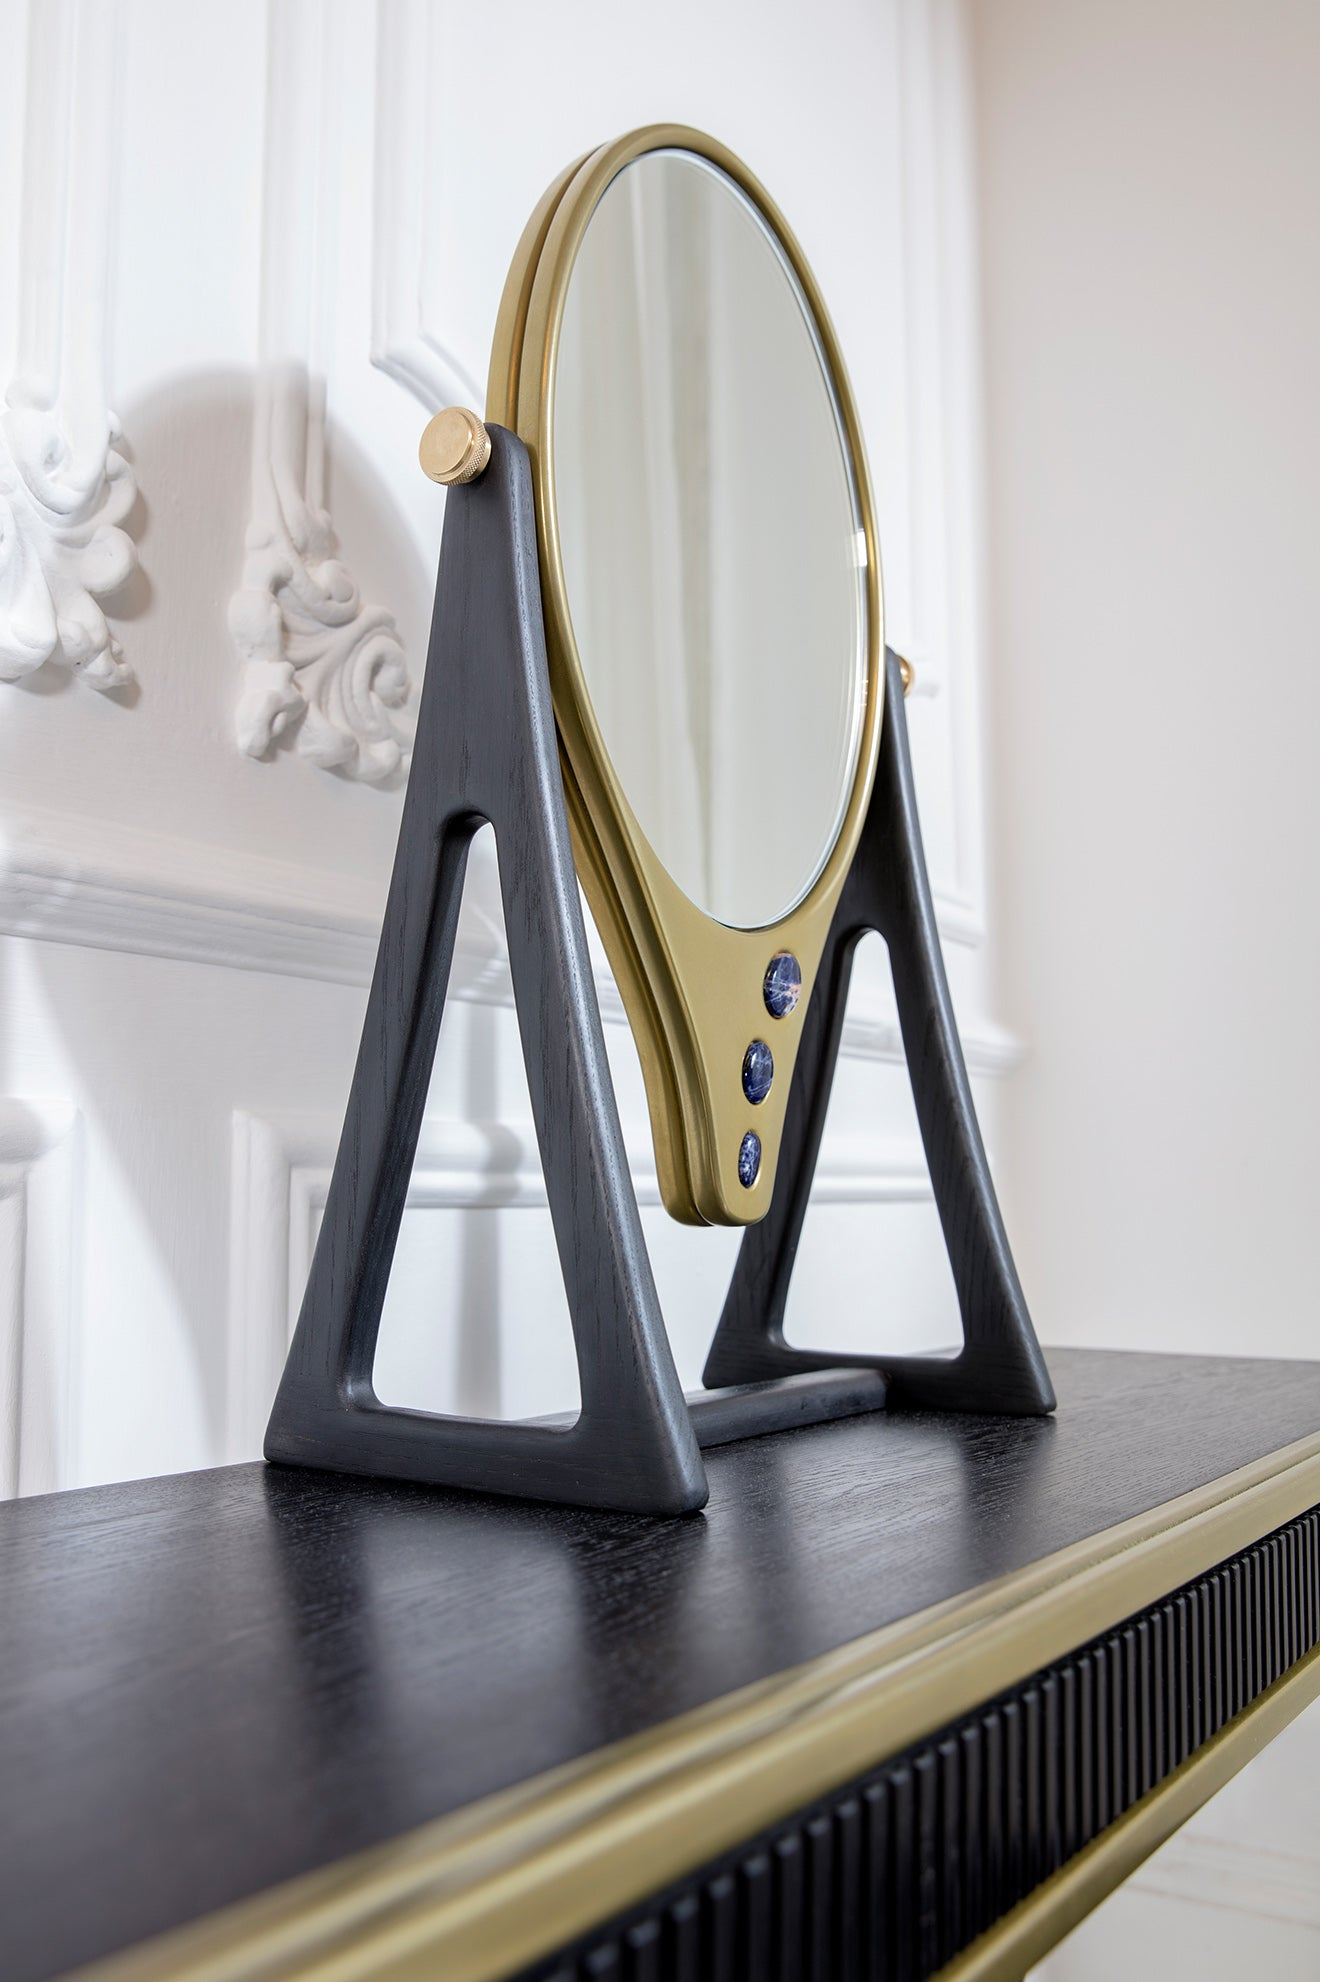 Felice James furniture collaboration Table Mirror